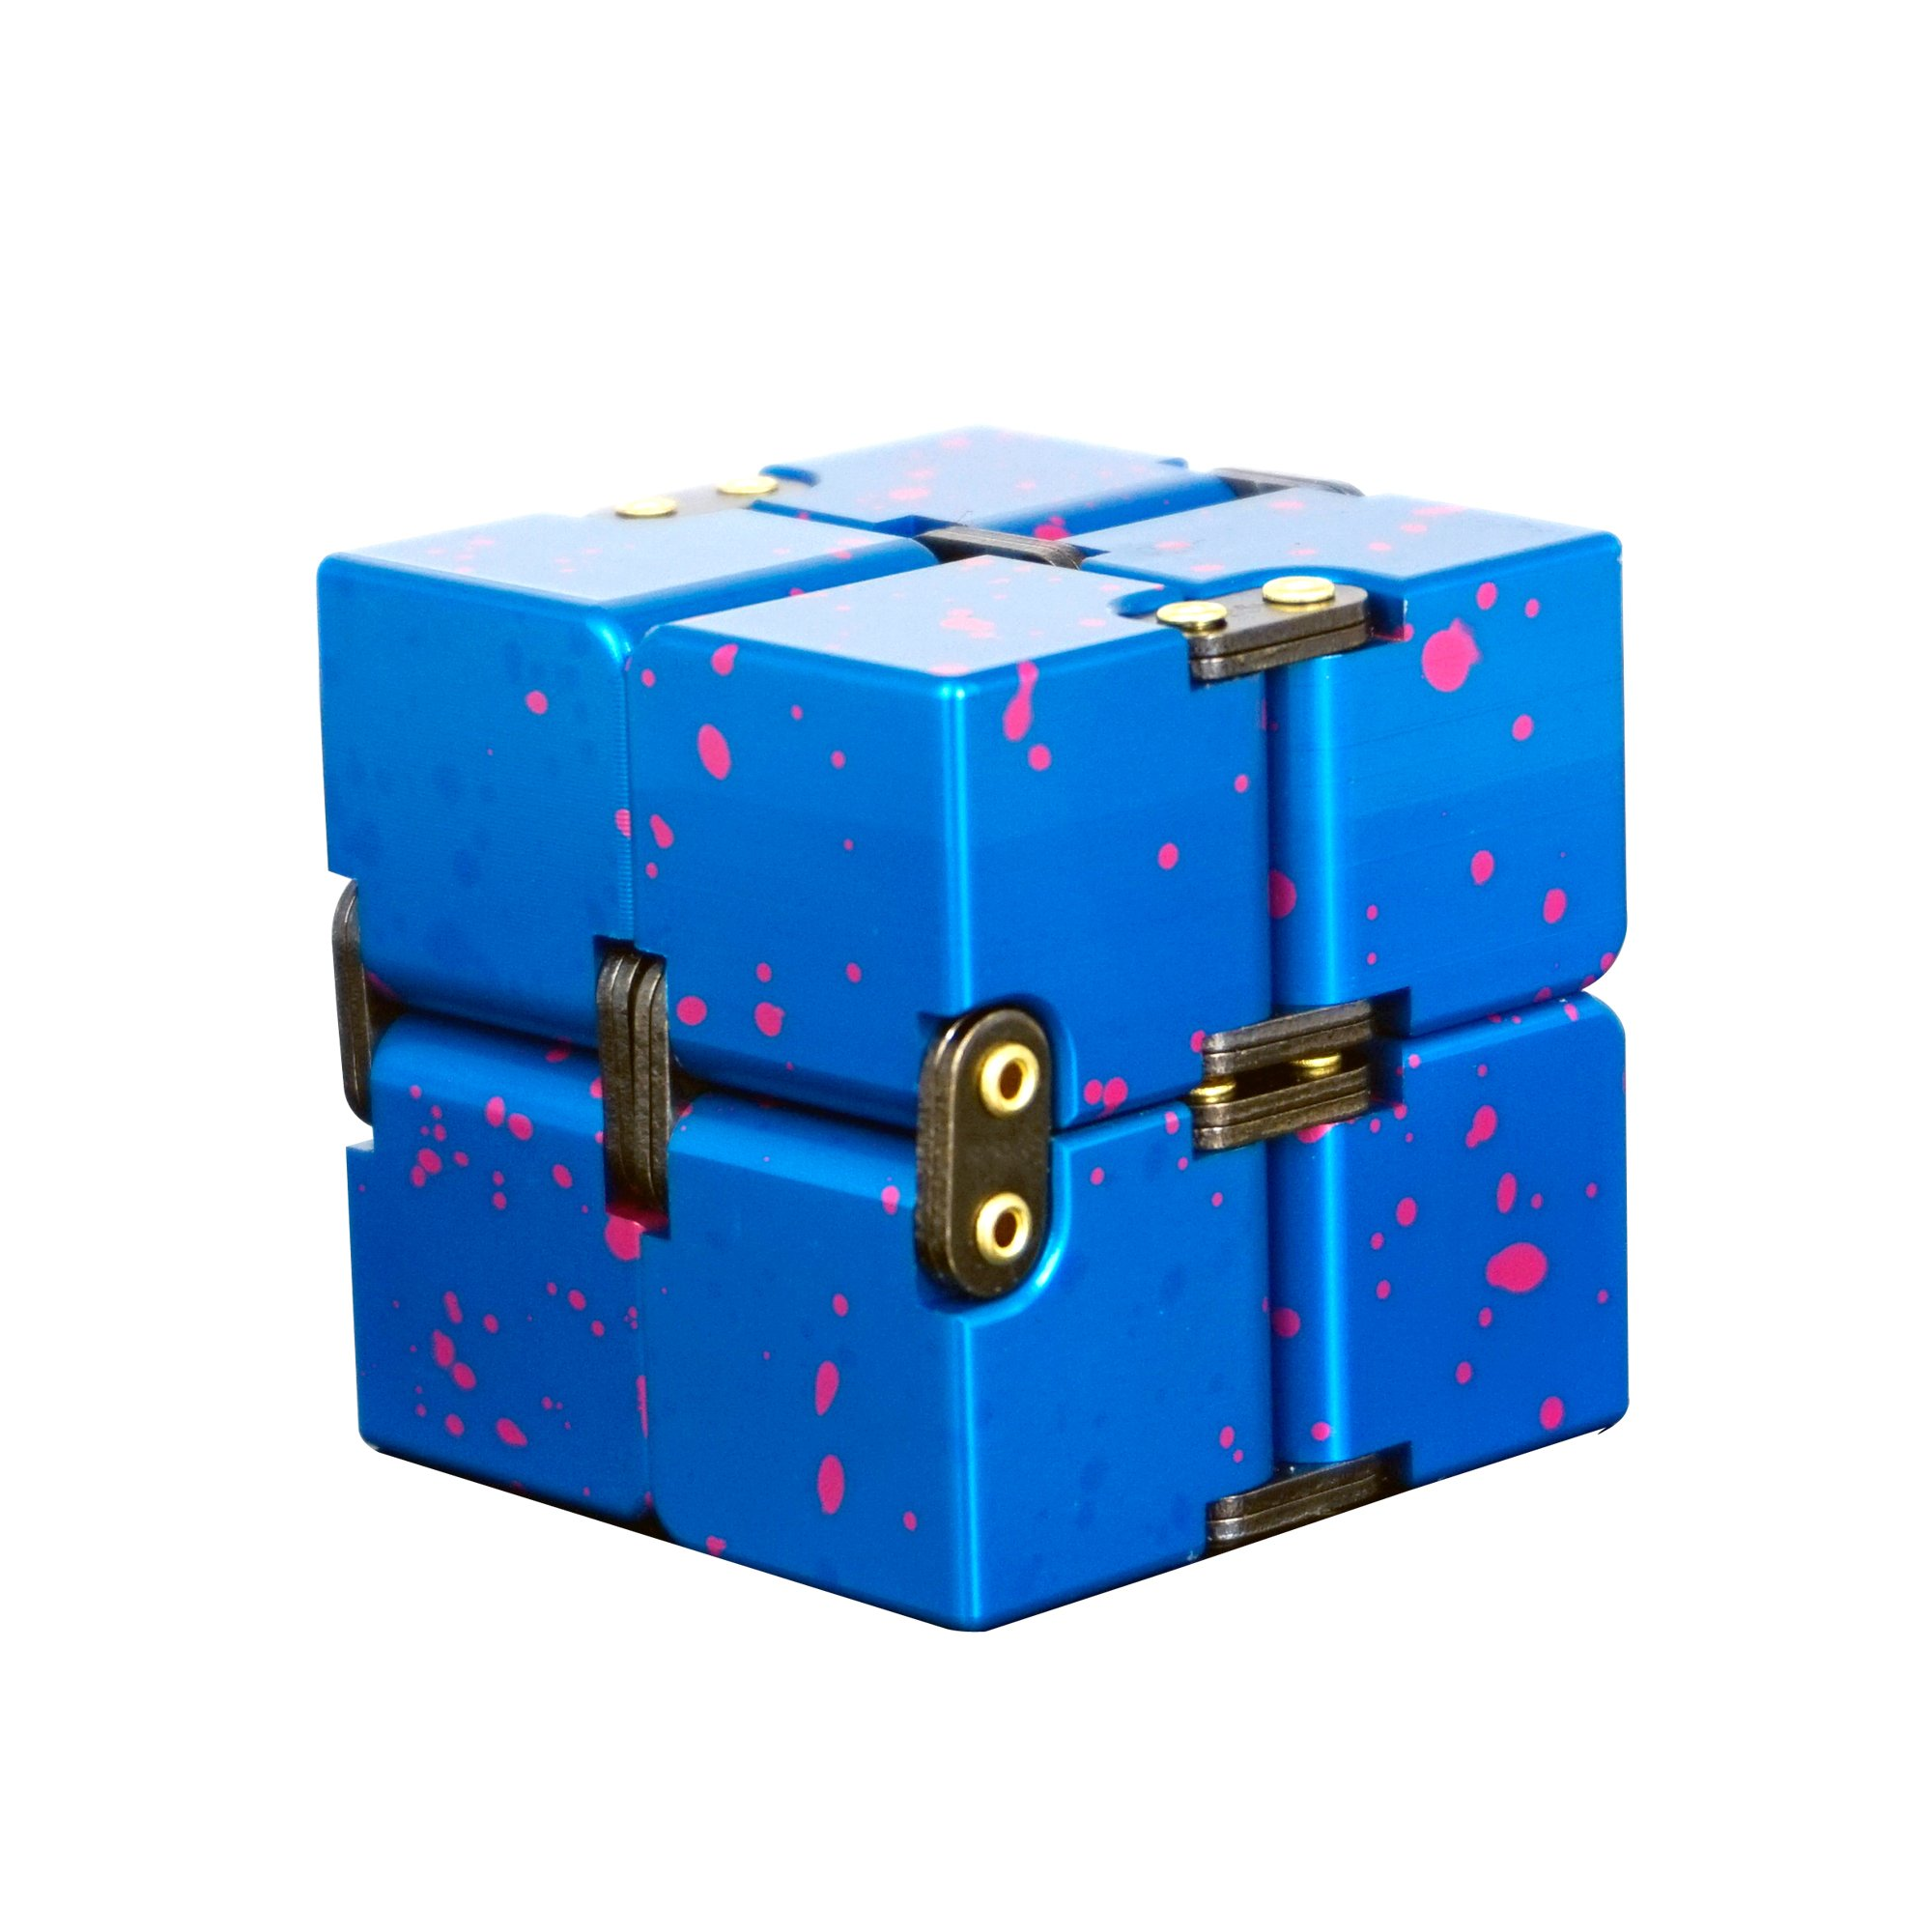 Metal Infinity Cube, Gazeto Durable Aluminum Alloy Decompression Toys, Pressure Reduction Educational Toys Stress Relief Toy Games Square Cube for Adult and Children, Sky Type, Blue